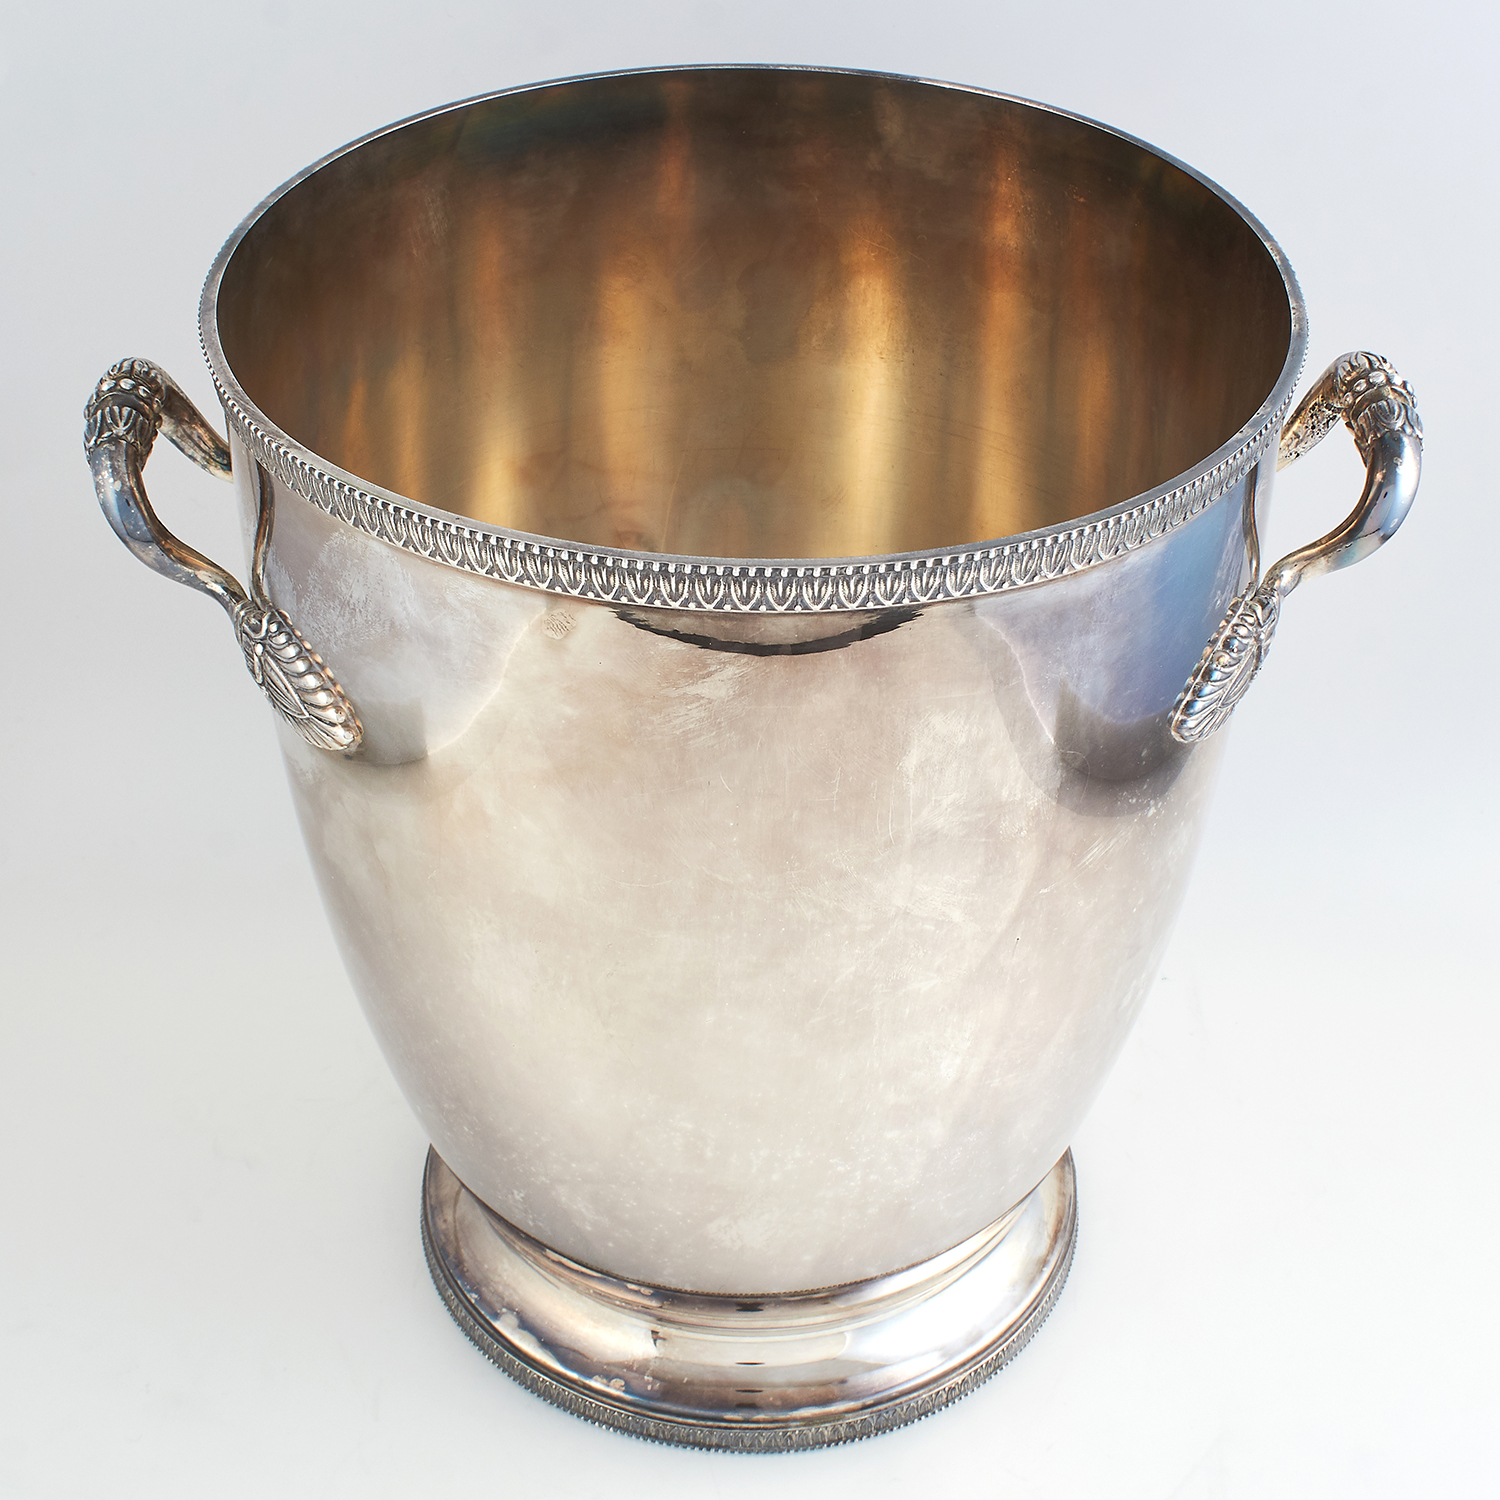 VINTAGE ITALIAN SILVER WINE COOLER BY CALDERONI, CIRCA 1960 the tapering body in plain design, - Image 2 of 4